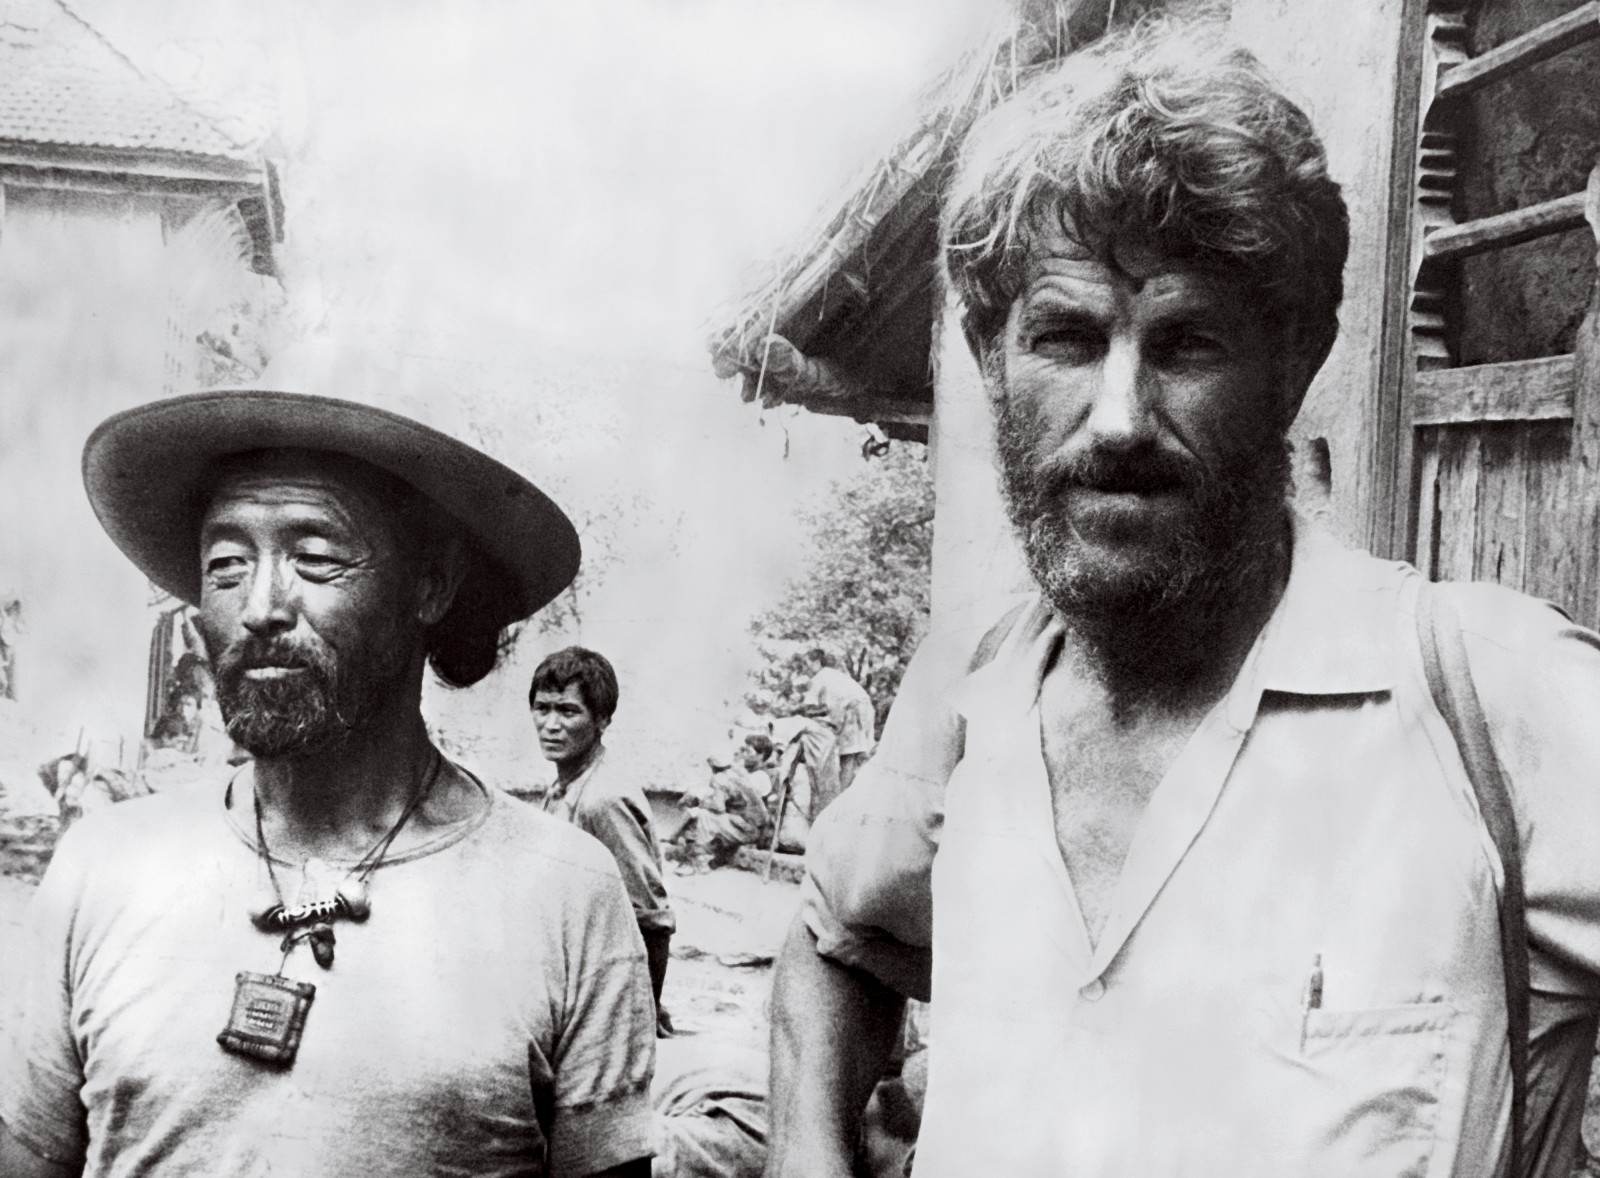 Hillary and Tenzing had both logged a lot of high-altitude time in the Himalayas prior to their historic climb—Hunt's expedition was Tenzing's seventh to Everest. After their successful ascent there was intense speculation—bordering on controversy—over who stepped on the summit first. Both climbers stressed repeatedly that it was a team effort.